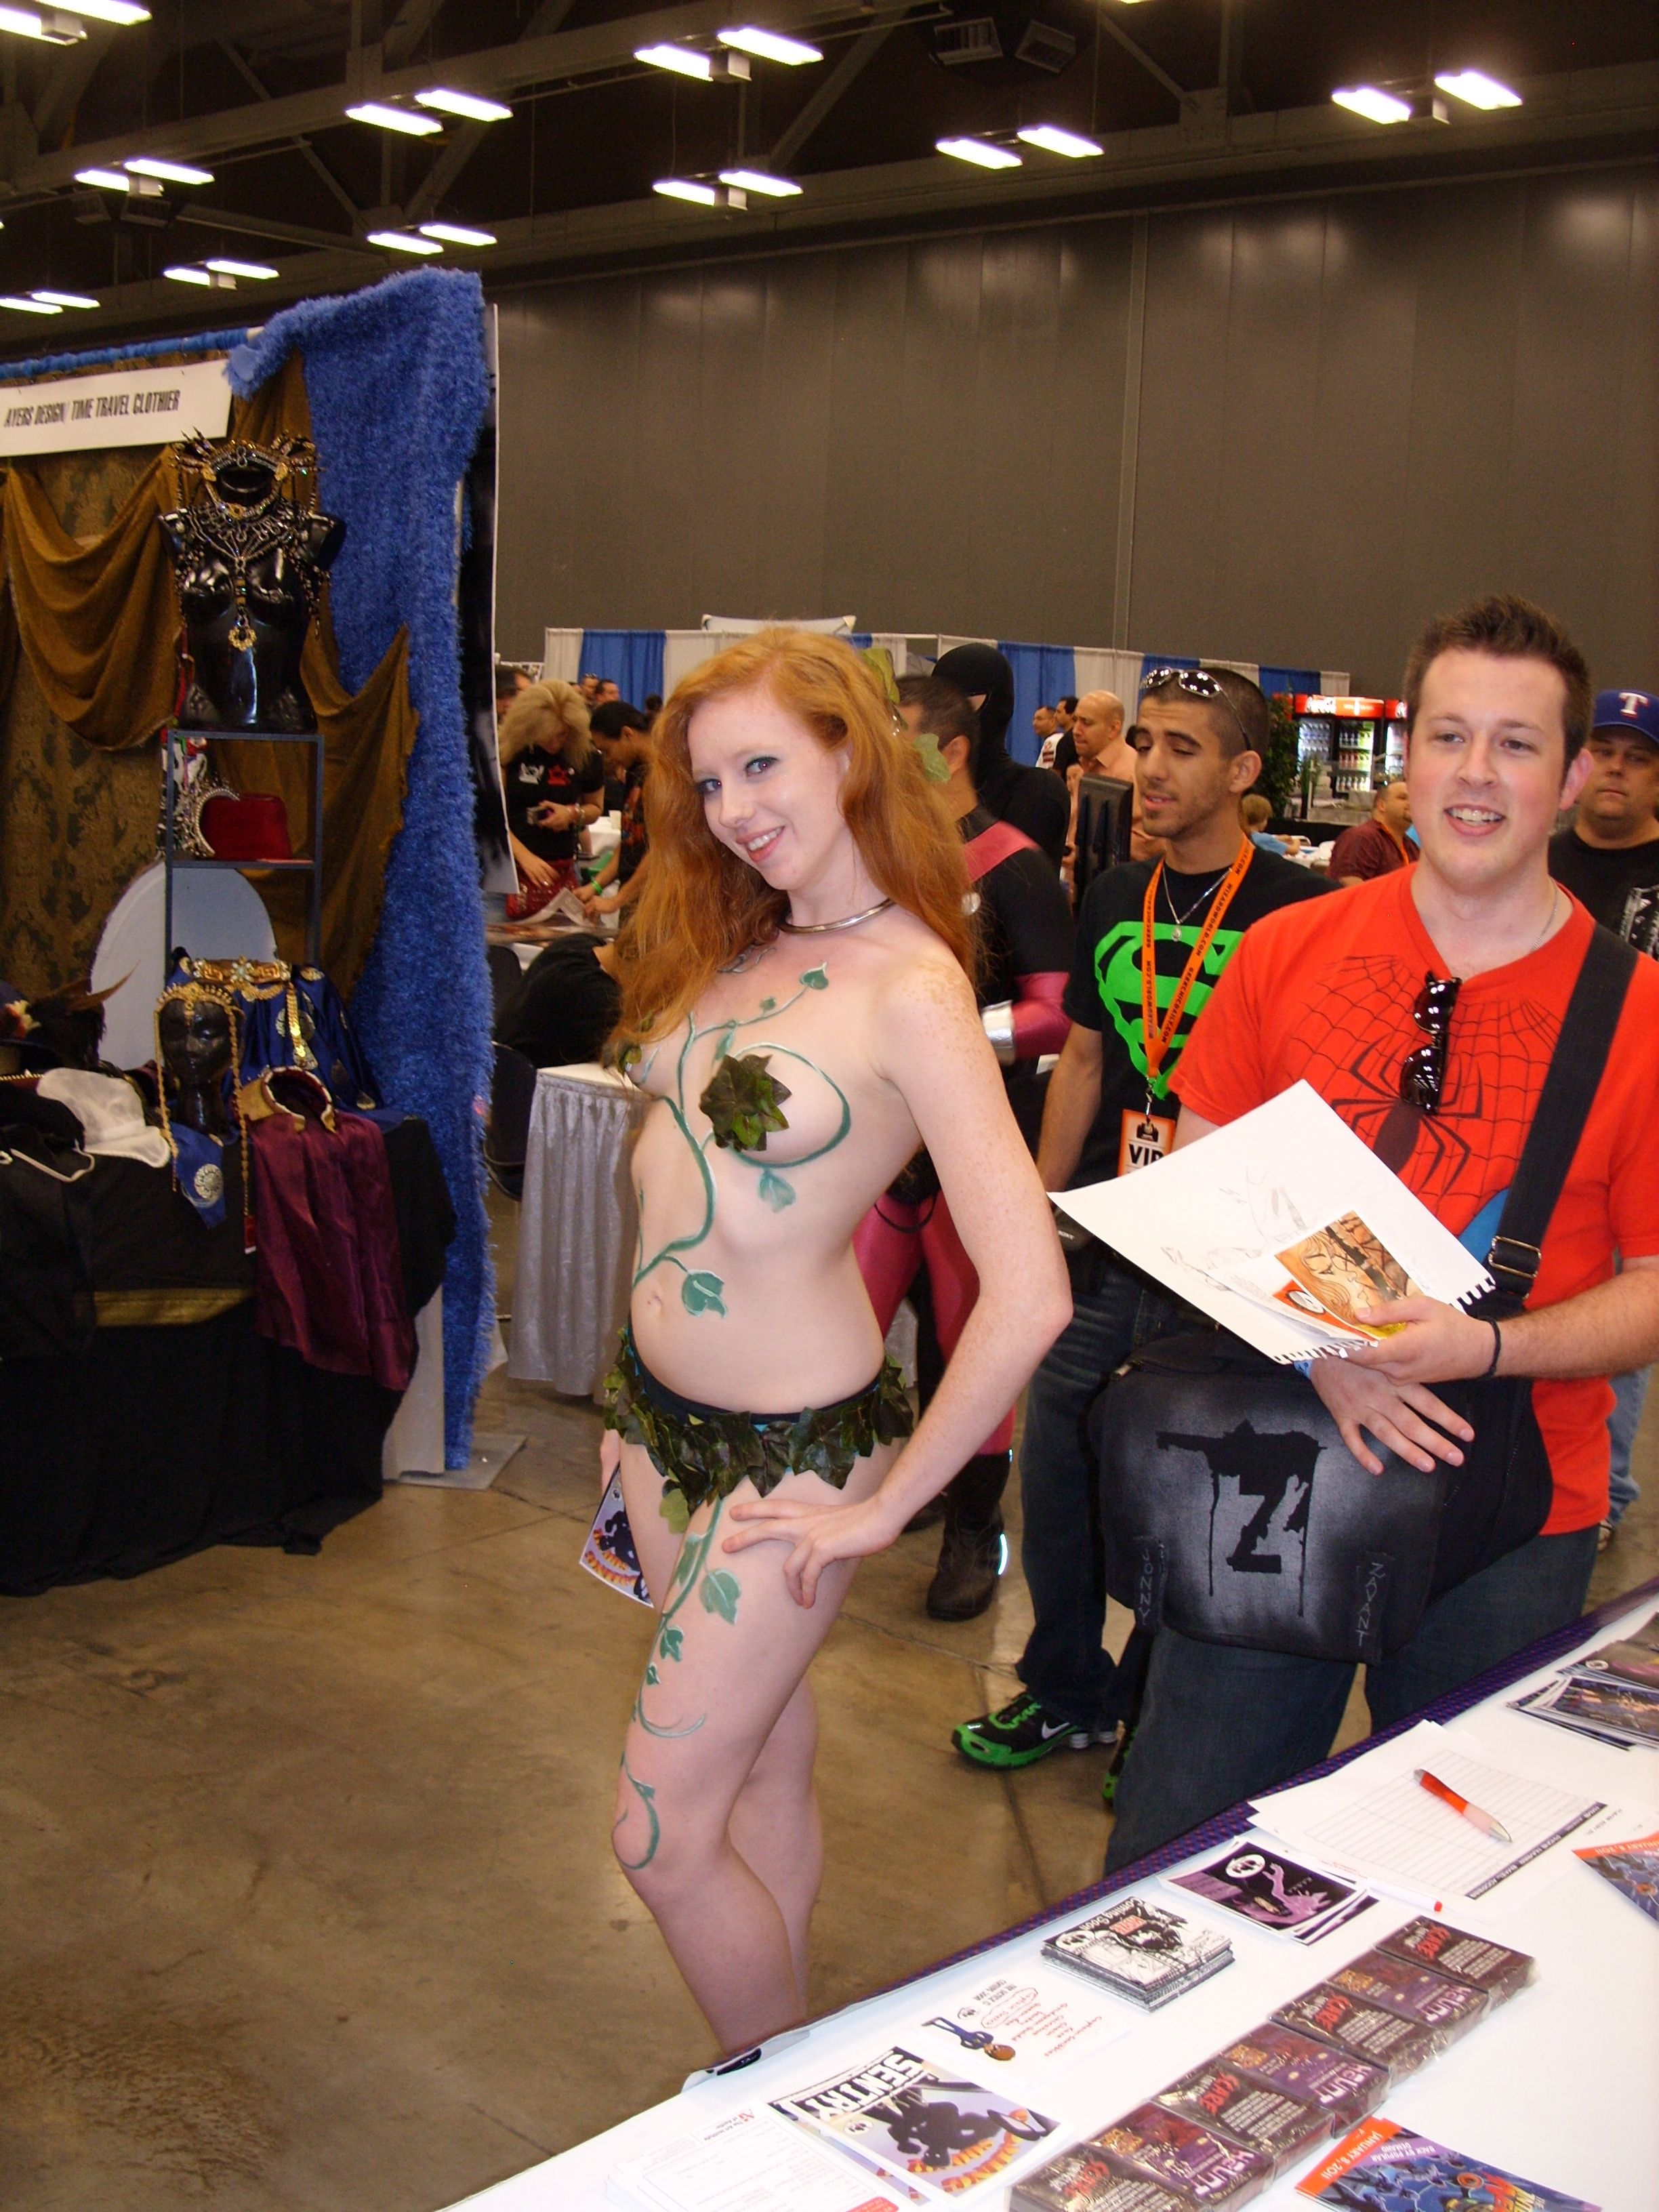 Why do female cosplayers wear sexualized outfits, but have a problem with male